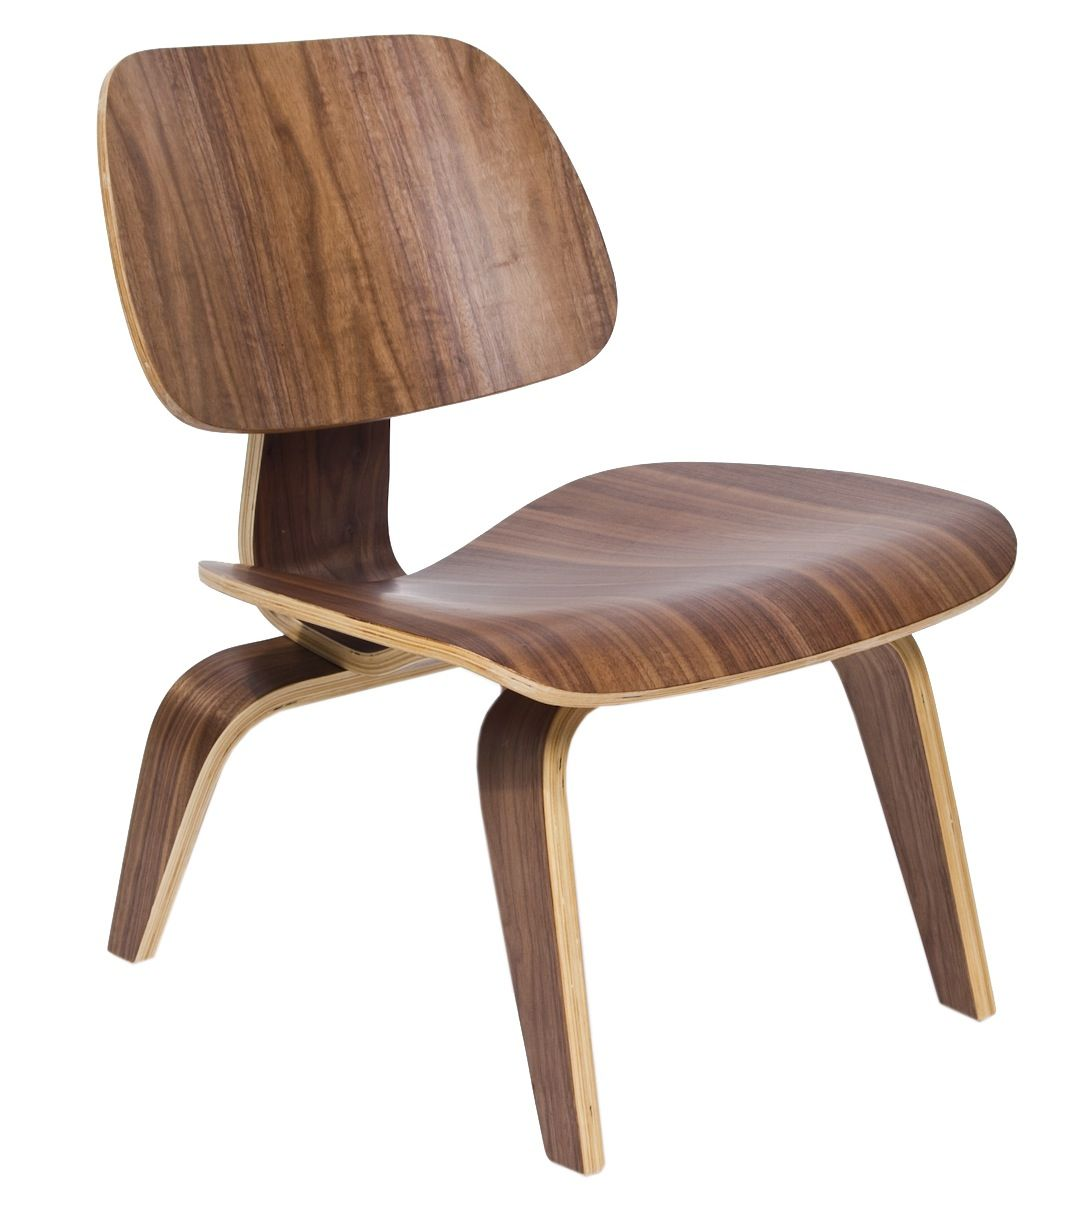 Molded Plywood Lounge Chair By Eames Good For Your